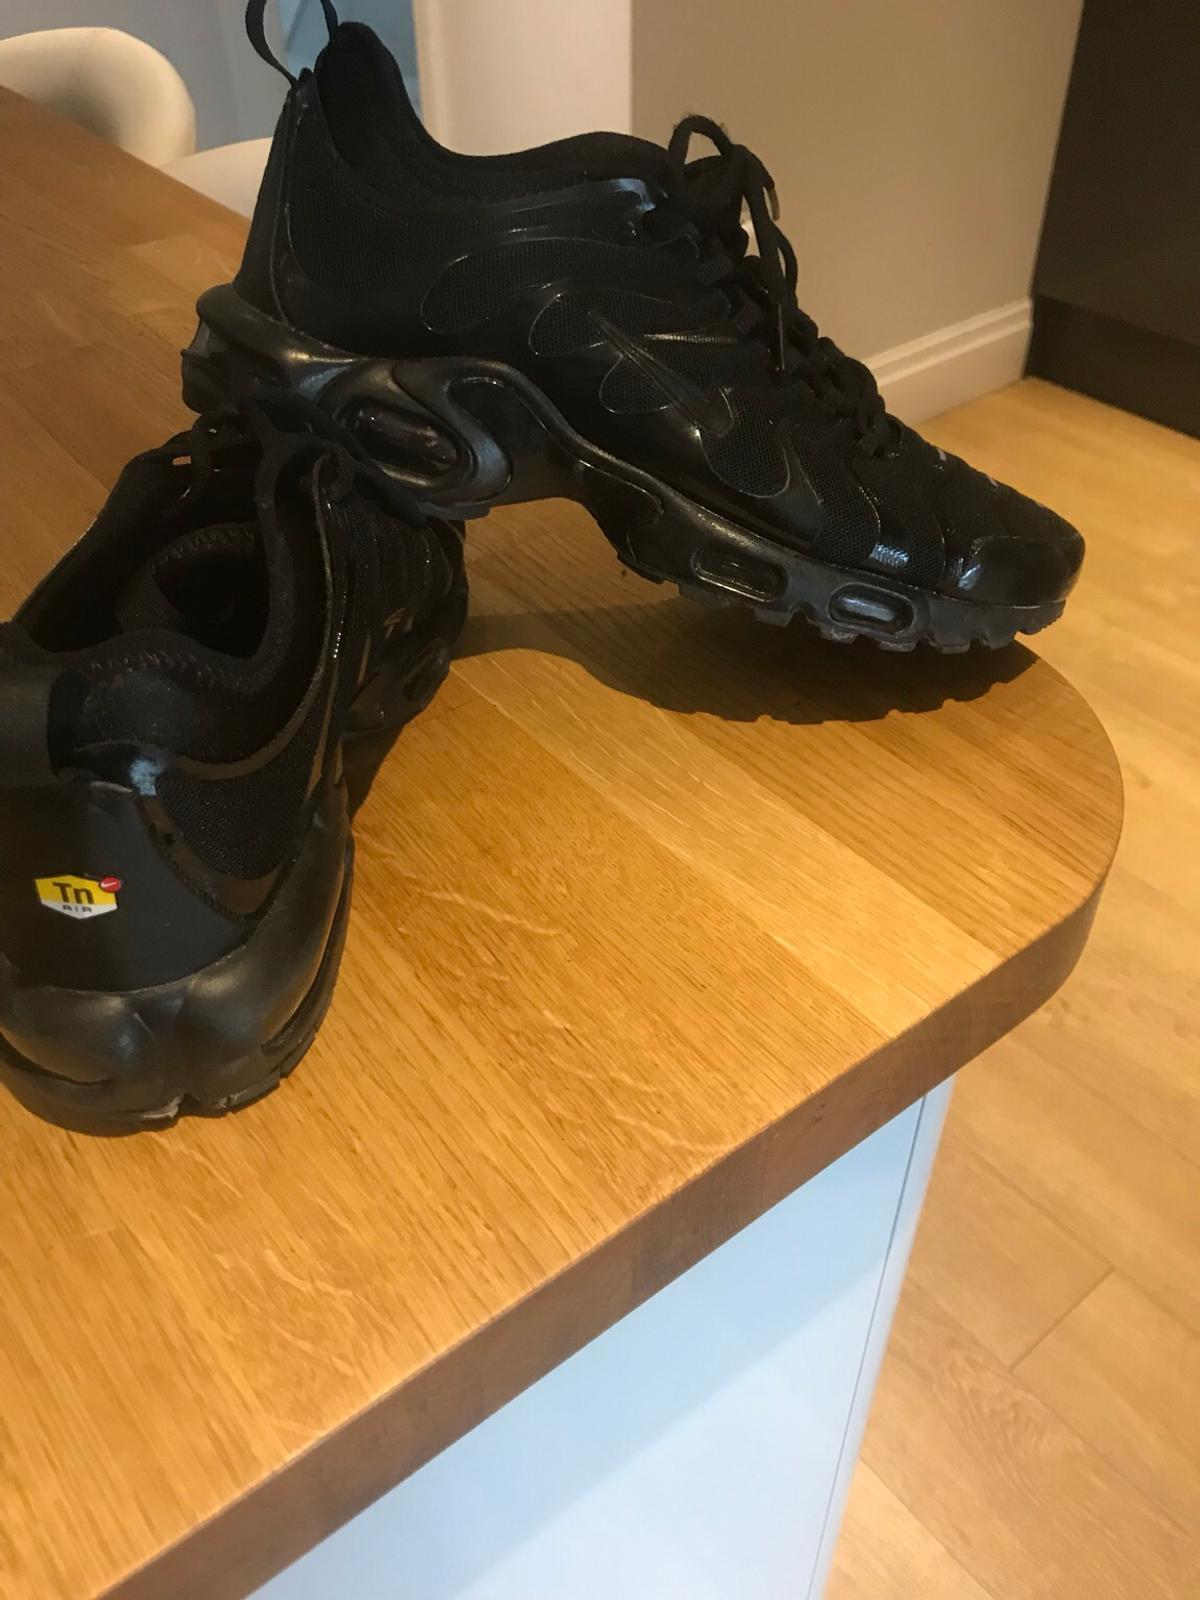 Nike Air Max TN (Replica) in M44 Salford for £30.00 for sale | Shpock